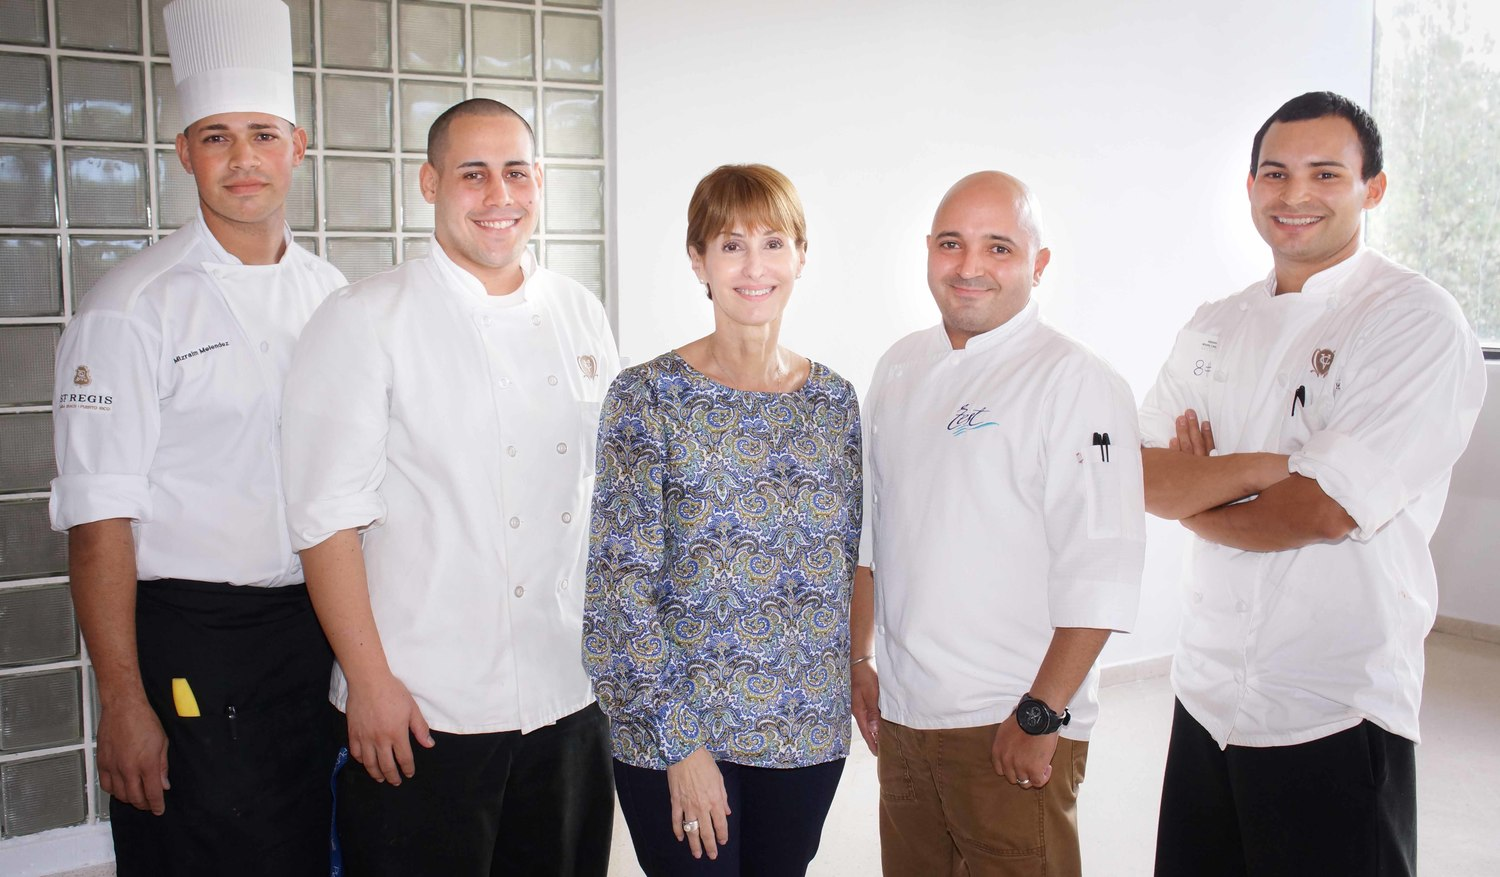 "Chef Raul Correa selected for the Puerto Rico Culinary Team 2014 representing the island in the culinary competitions ""Taste of the Caribbean"" organized by the Caribbean Hotel & Tourism Association in Miami from June 28 – July 2, 2014. Photo Credit: Yaira Solis, El Vocero http://buff.ly/1fHHRiE"